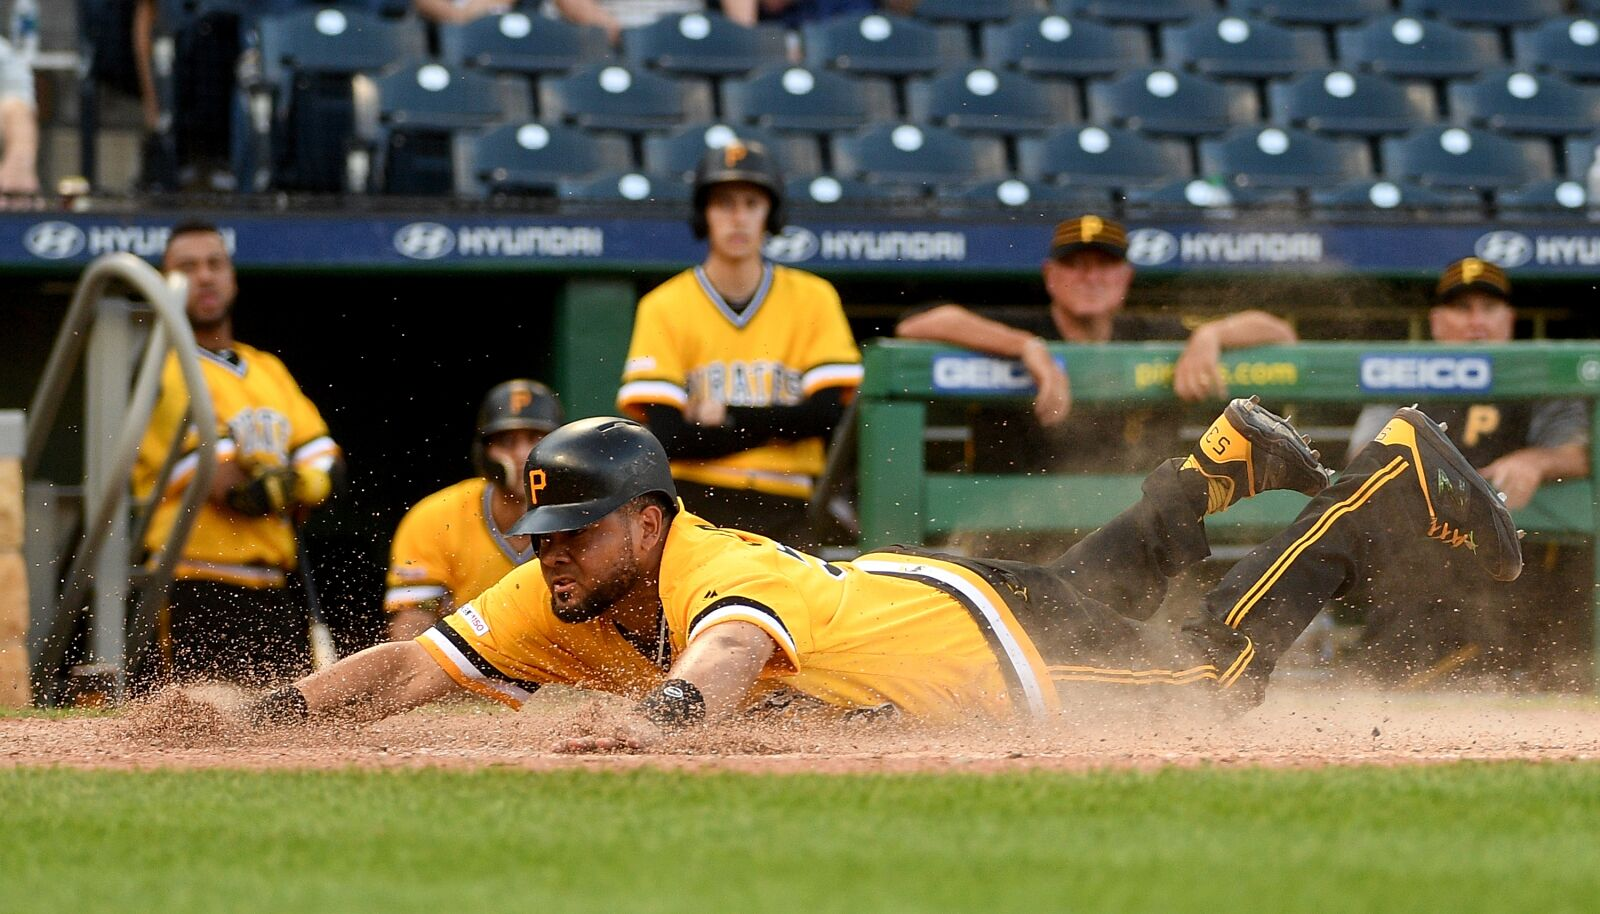 Pittsburgh Pirates: Home stand report card for 6/18 – 6/23